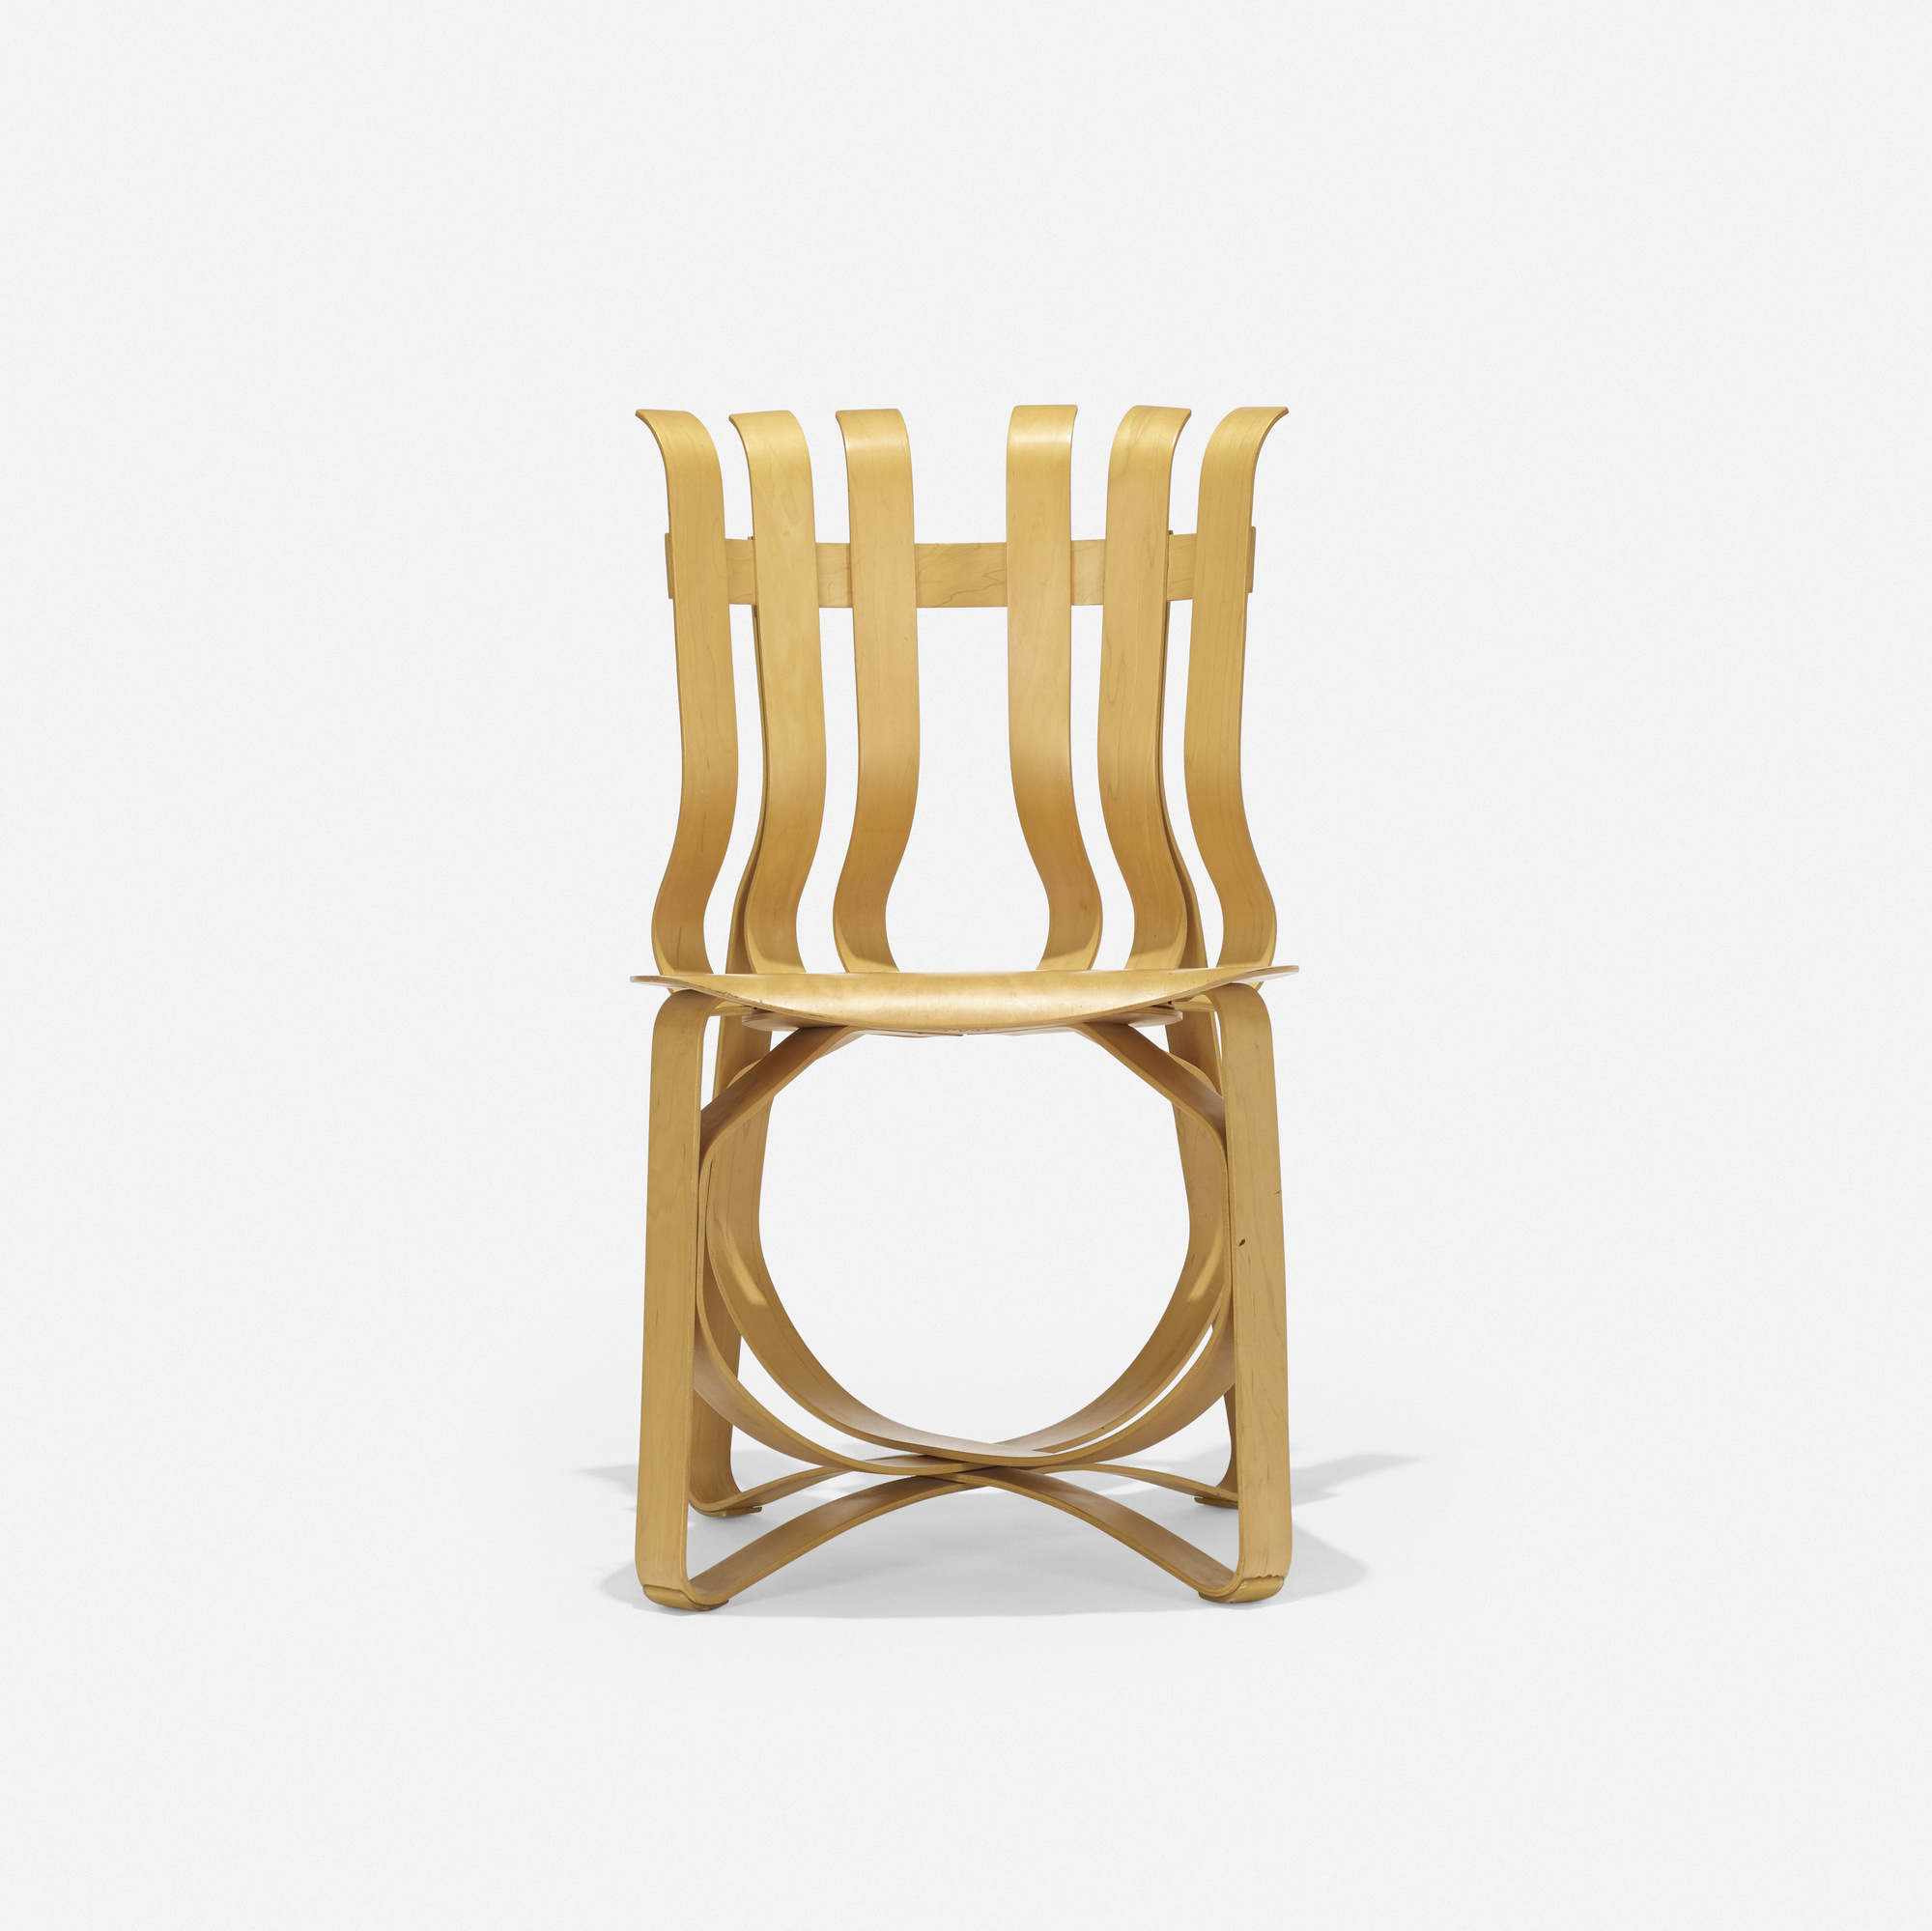 116: Frank Gehry / Hat Trick chair (1 of 4)